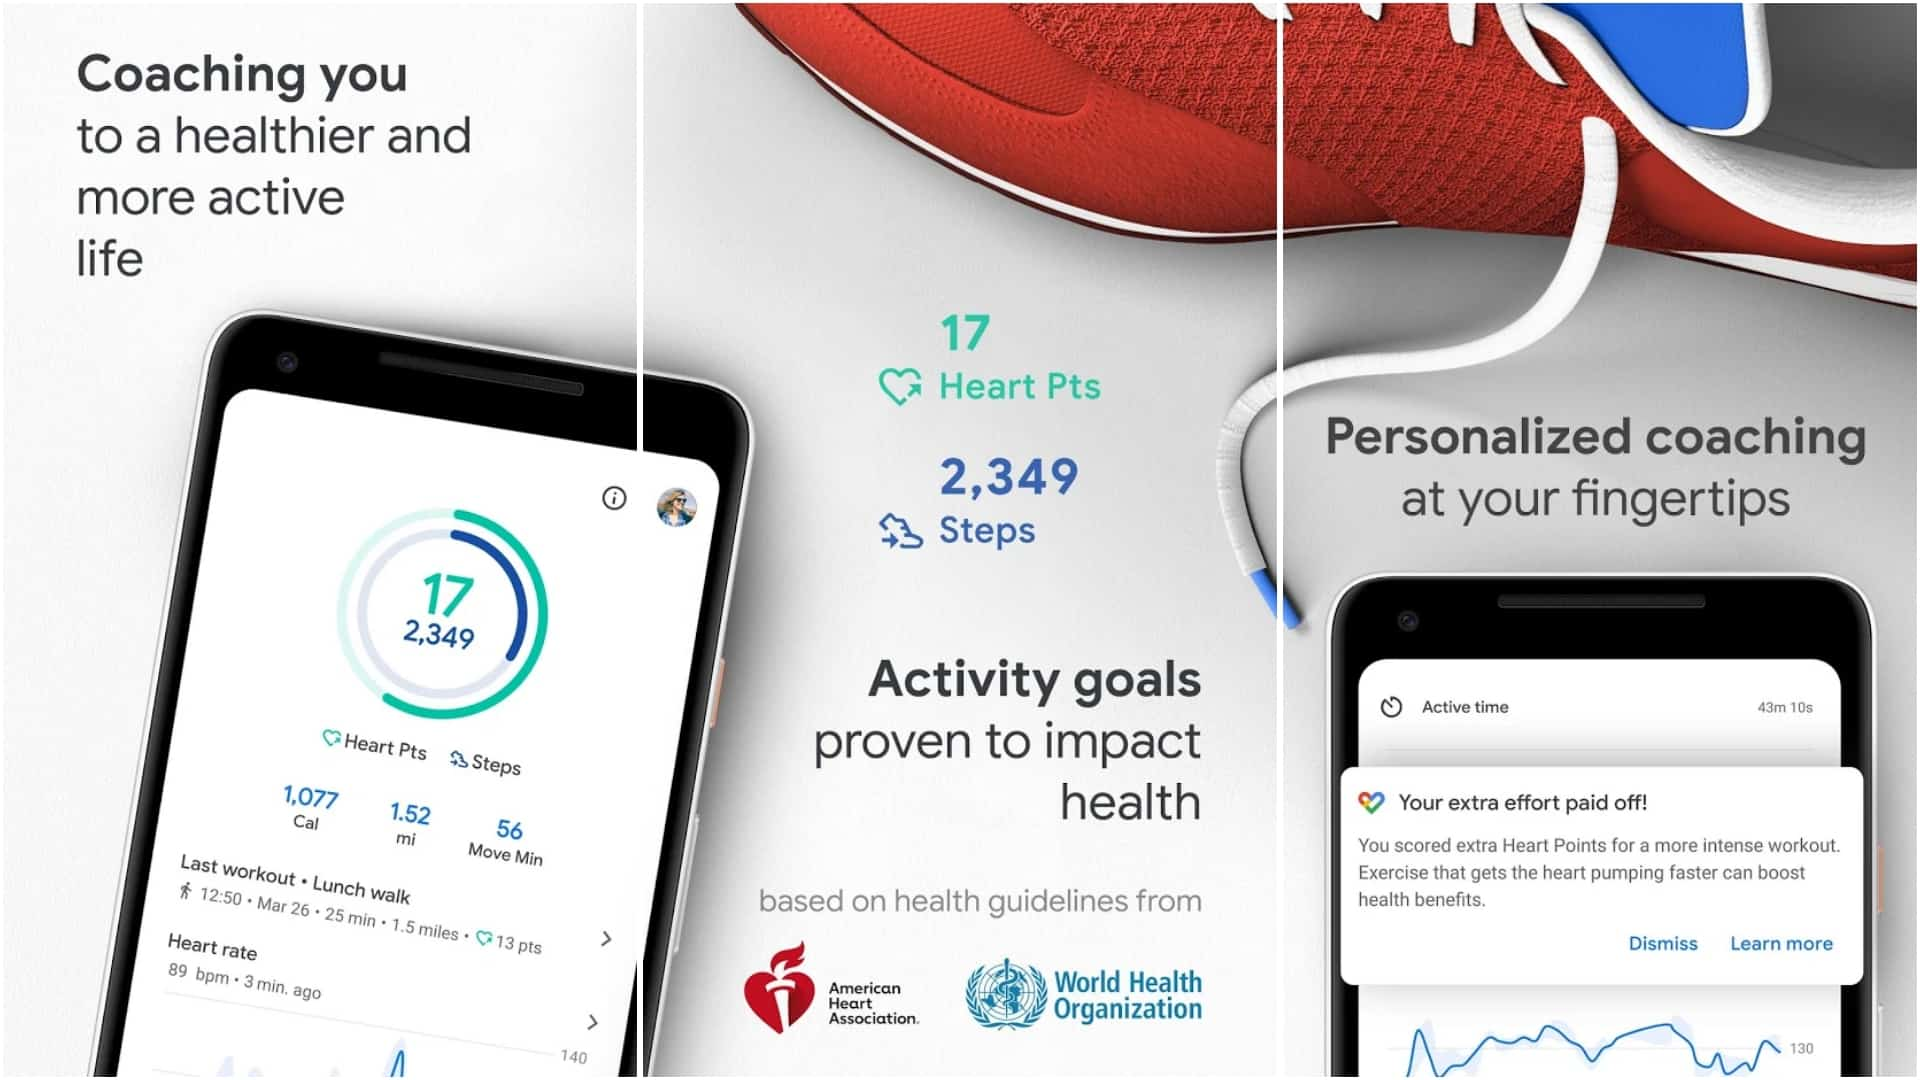 Google Fit app image April 2020